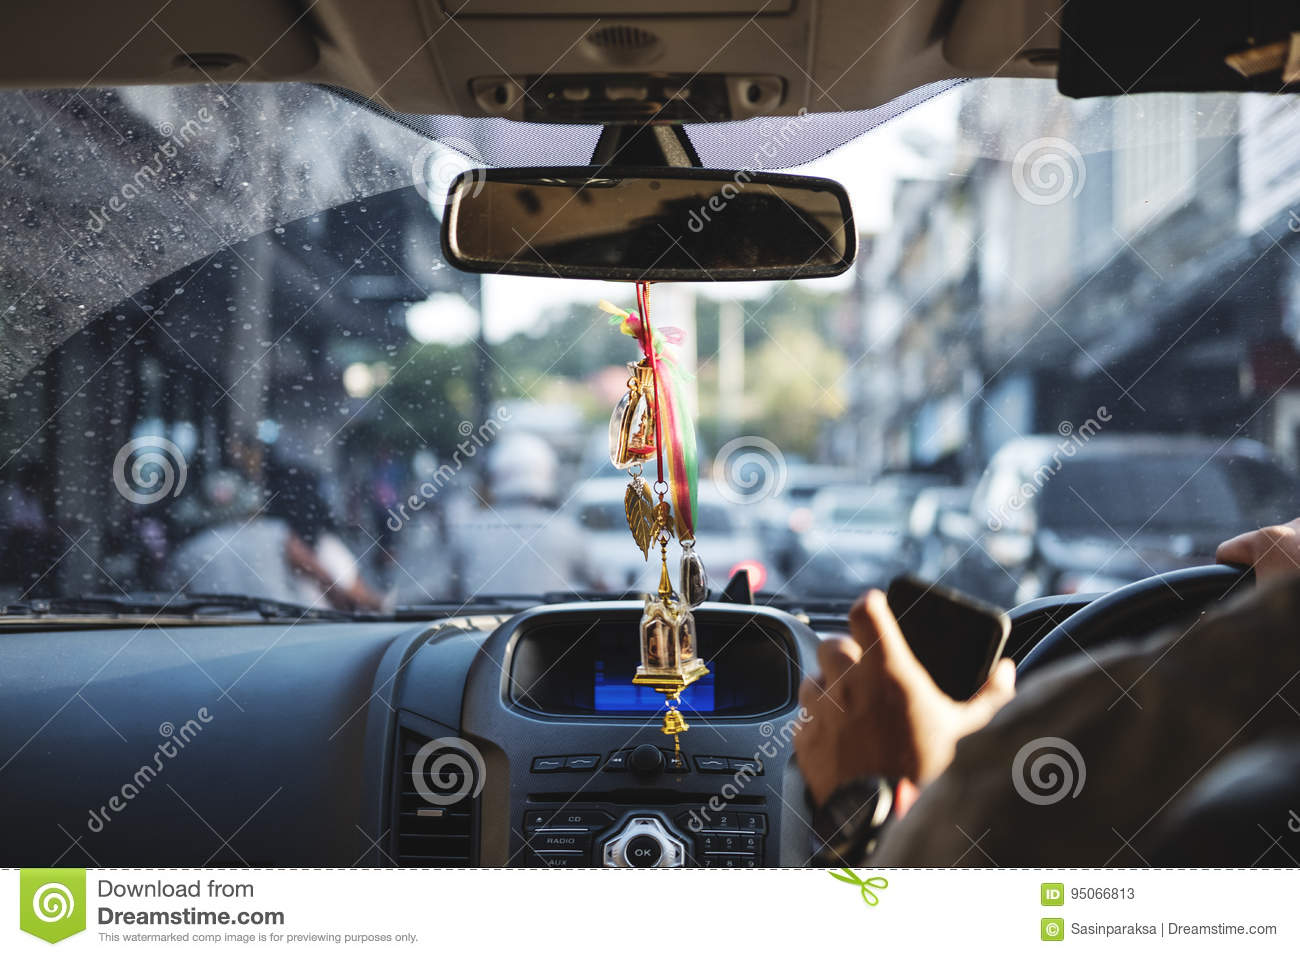 Car interior hanging - Modern Car Interior With Hanging Amulets Charm On Rear View Mirror Driving On The Road Selective Focus